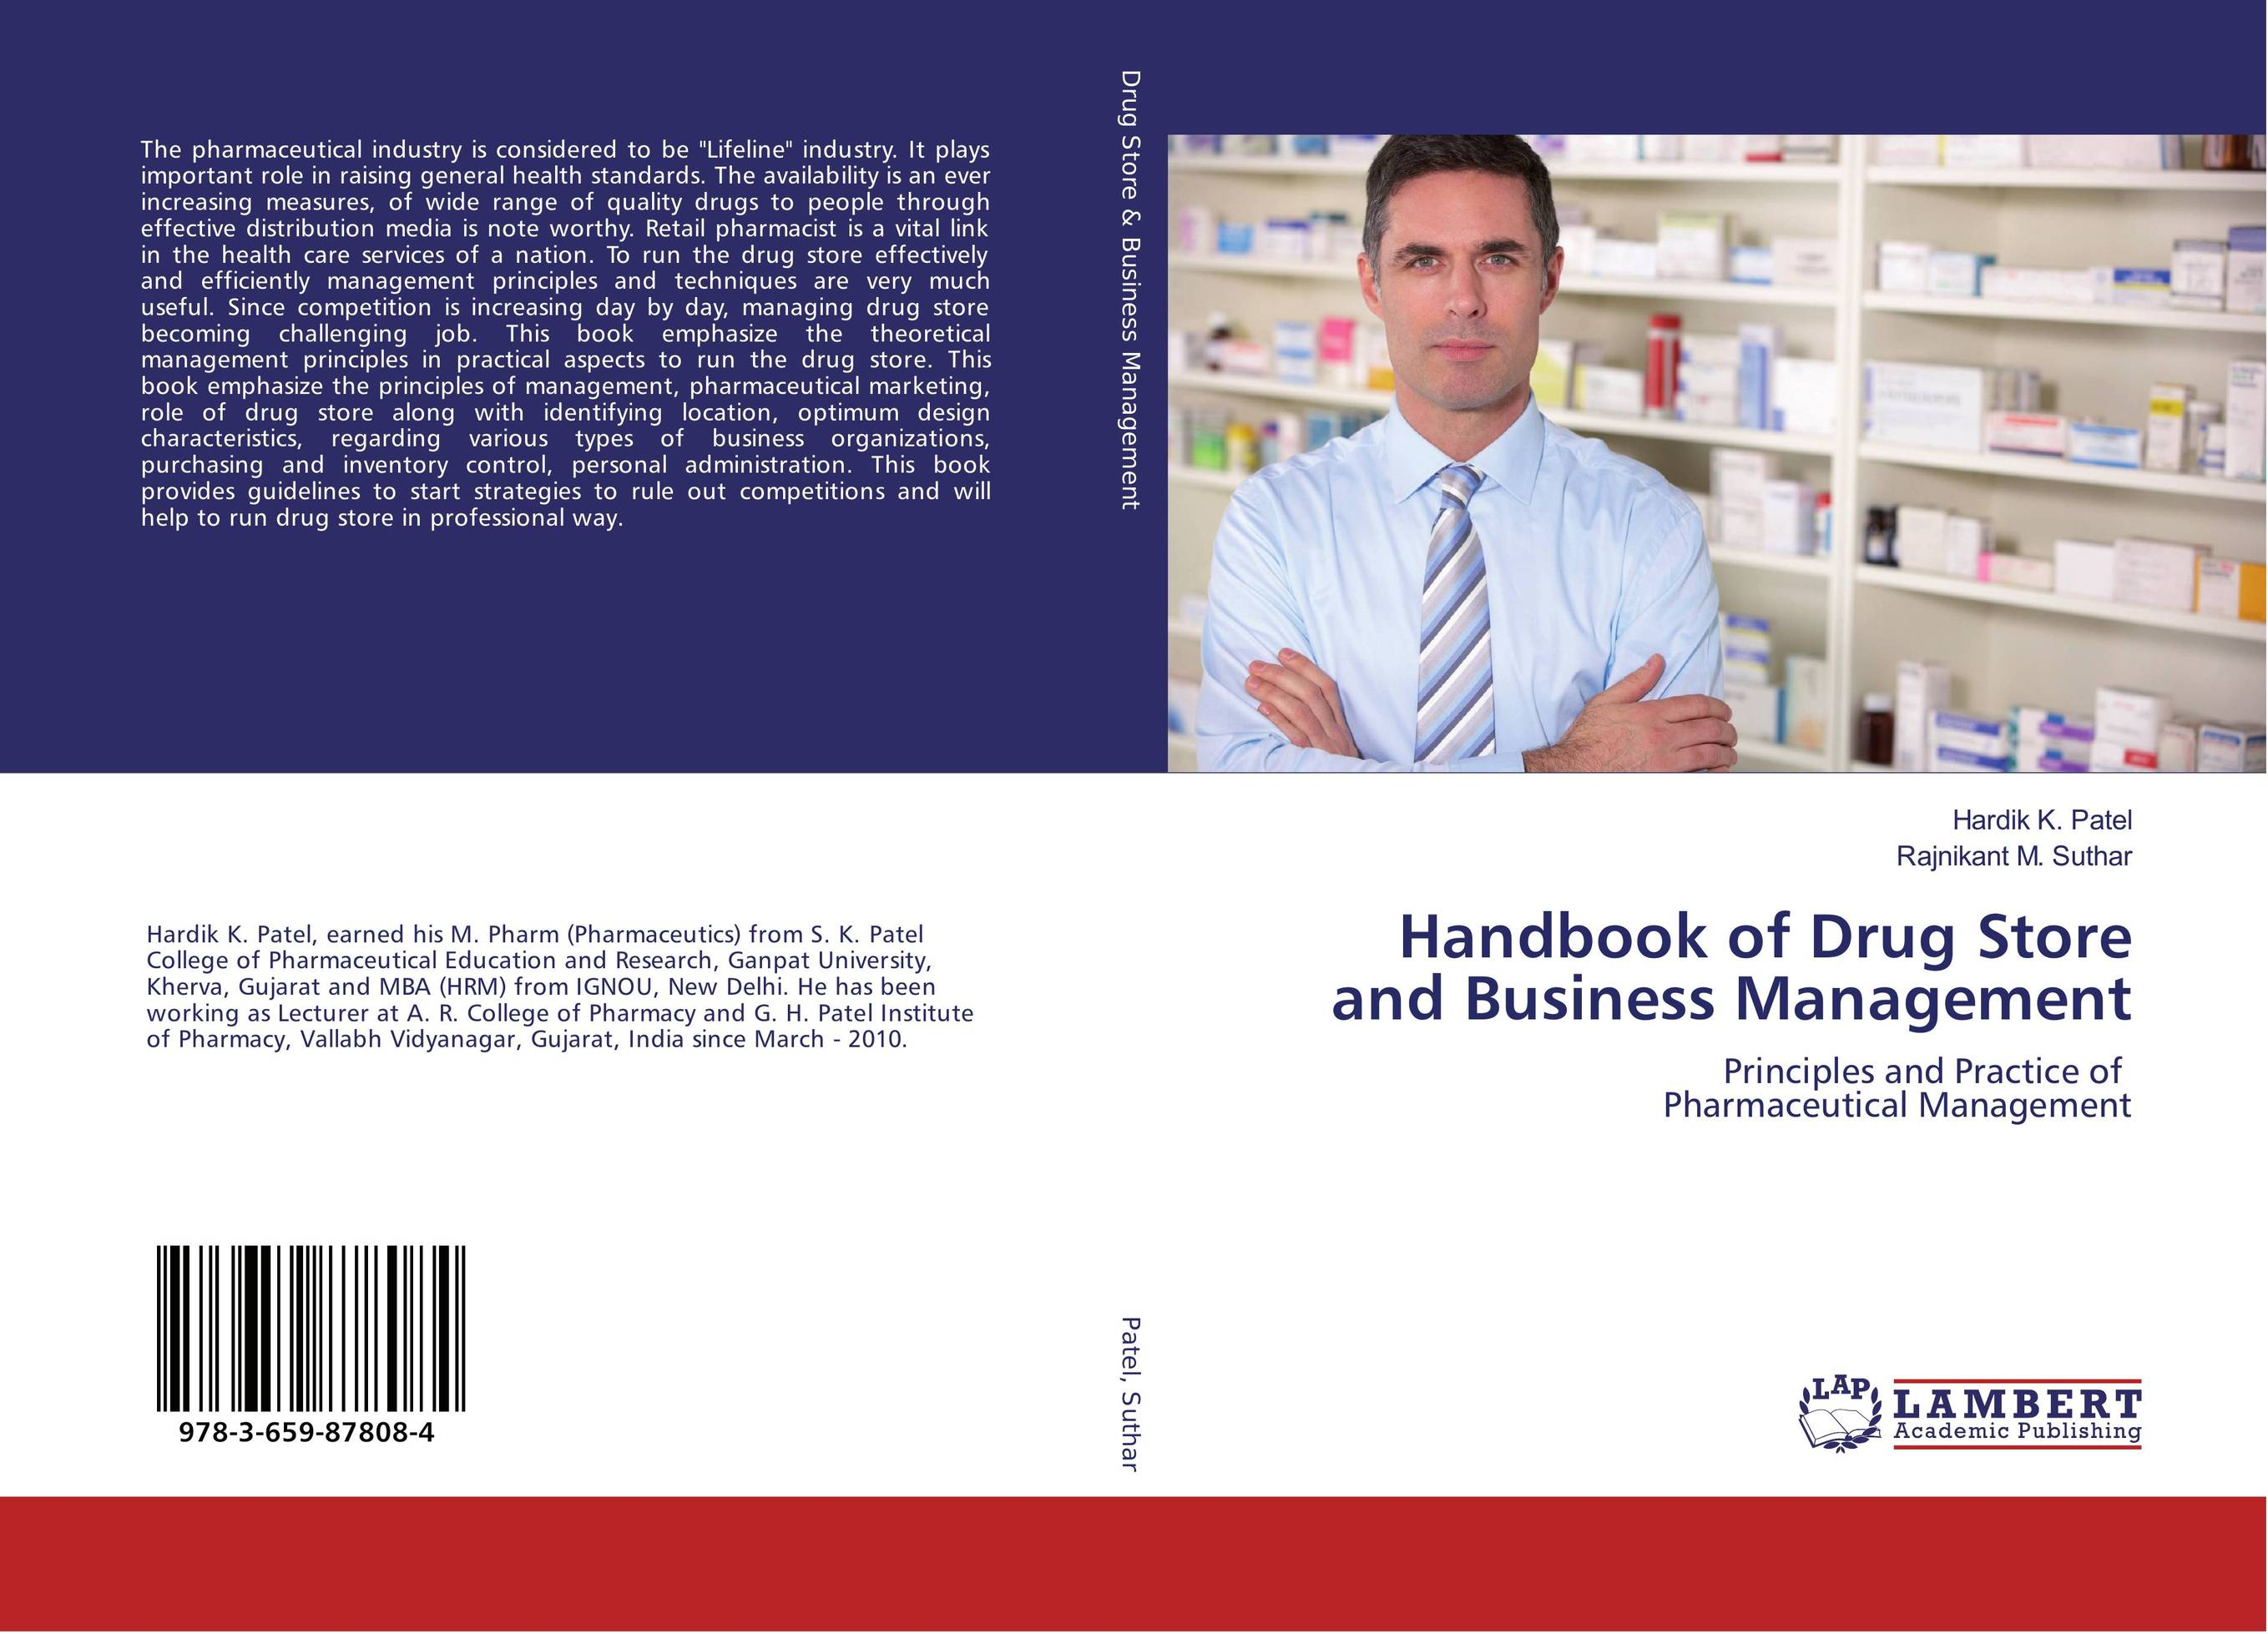 Handbook of Drug Store and Business Management handbook of the exhibition of napier relics and of books instruments and devices for facilitating calculation